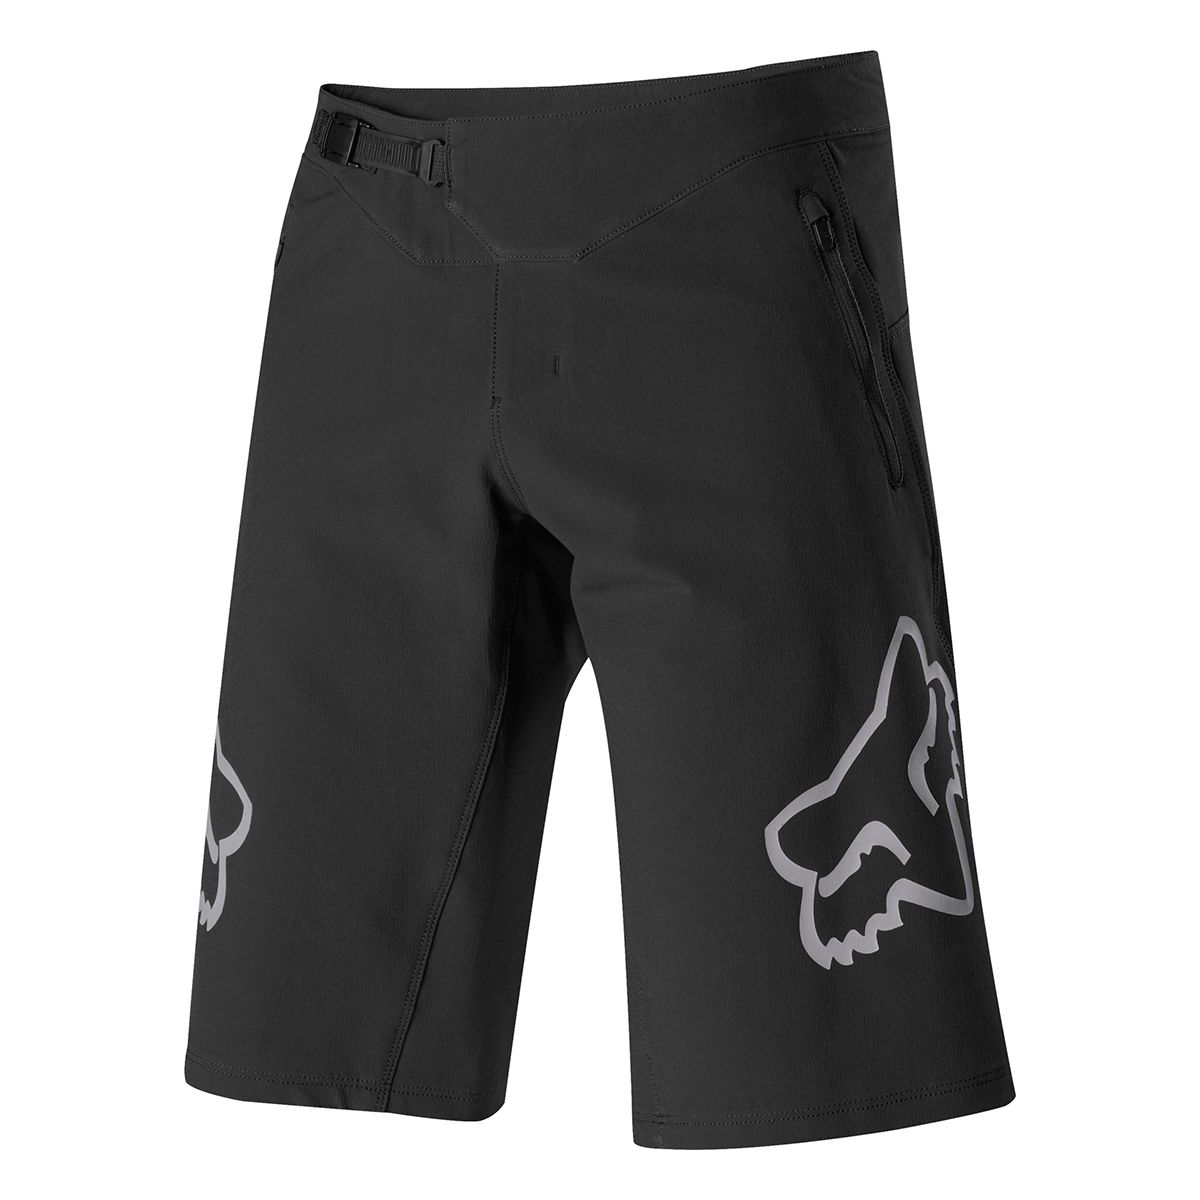 YOUTH DEFEND S SHORT Kinder Bikeshorts